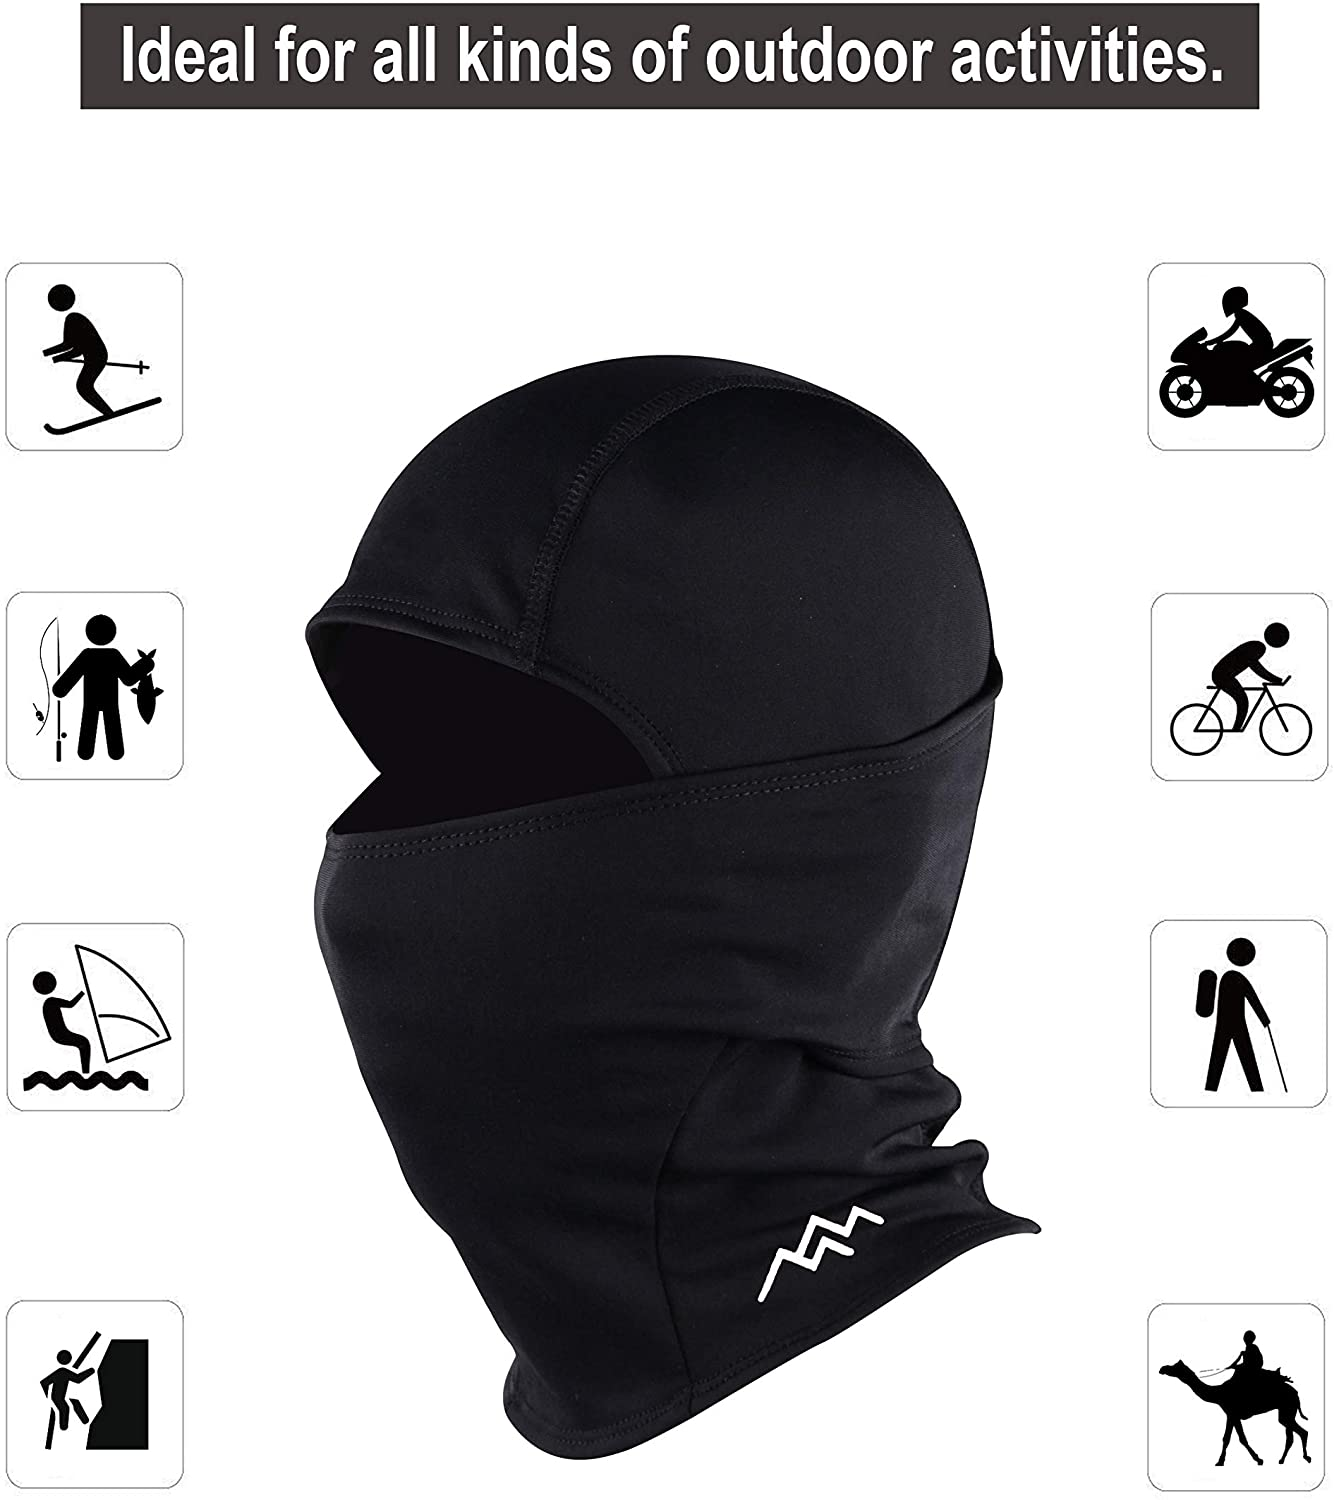 TRAILSIDE SUPPLY CO. Balaclava Face Mask Sun Hood Tactical Lightweight Ski Motorcycle Cycling Running,Black: Clothing